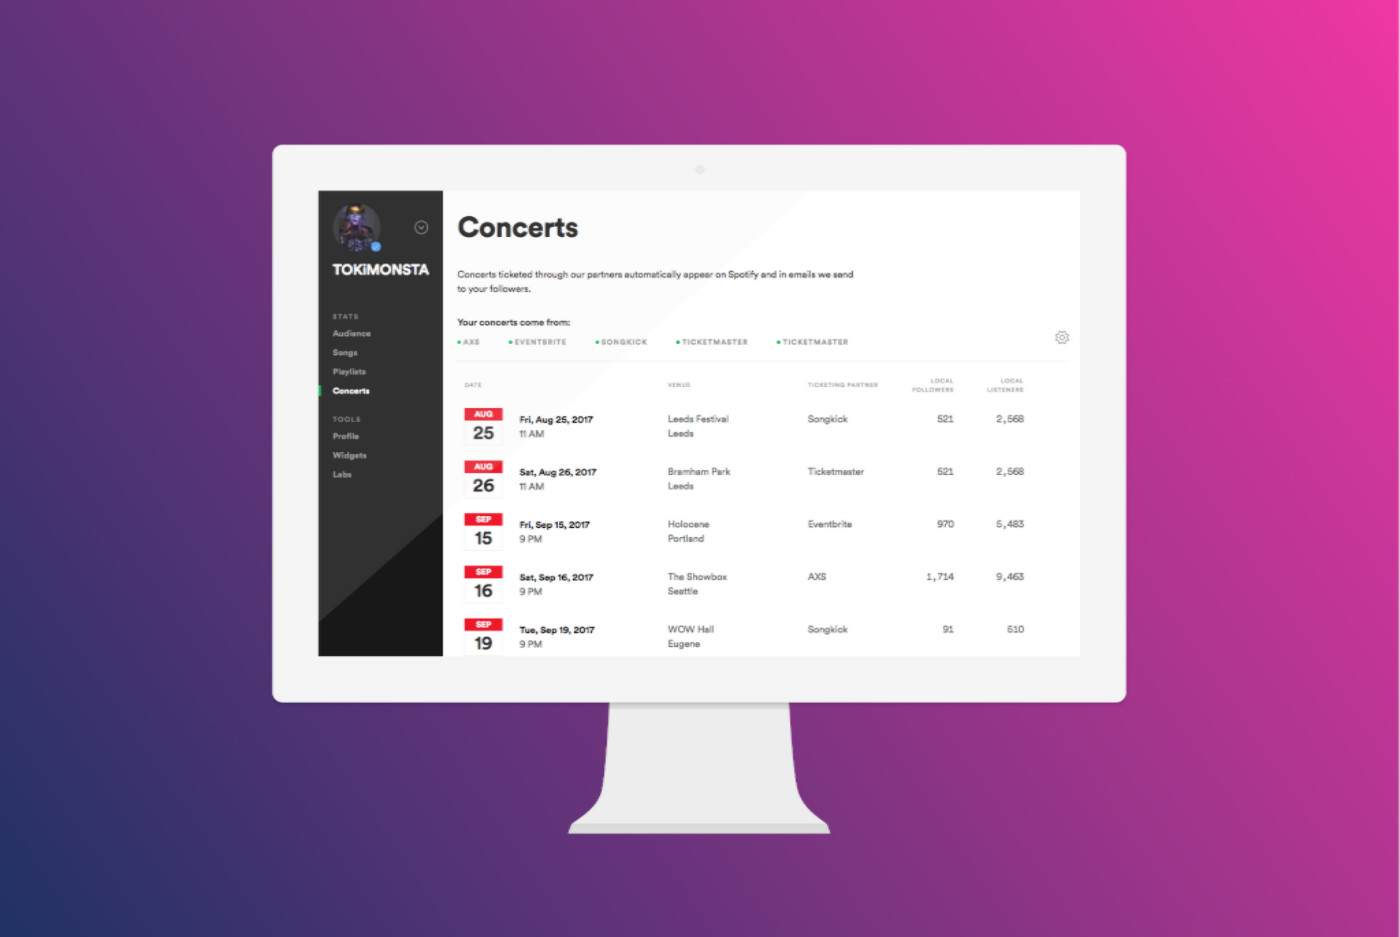 Introducing our new concerts section, available to all artists.